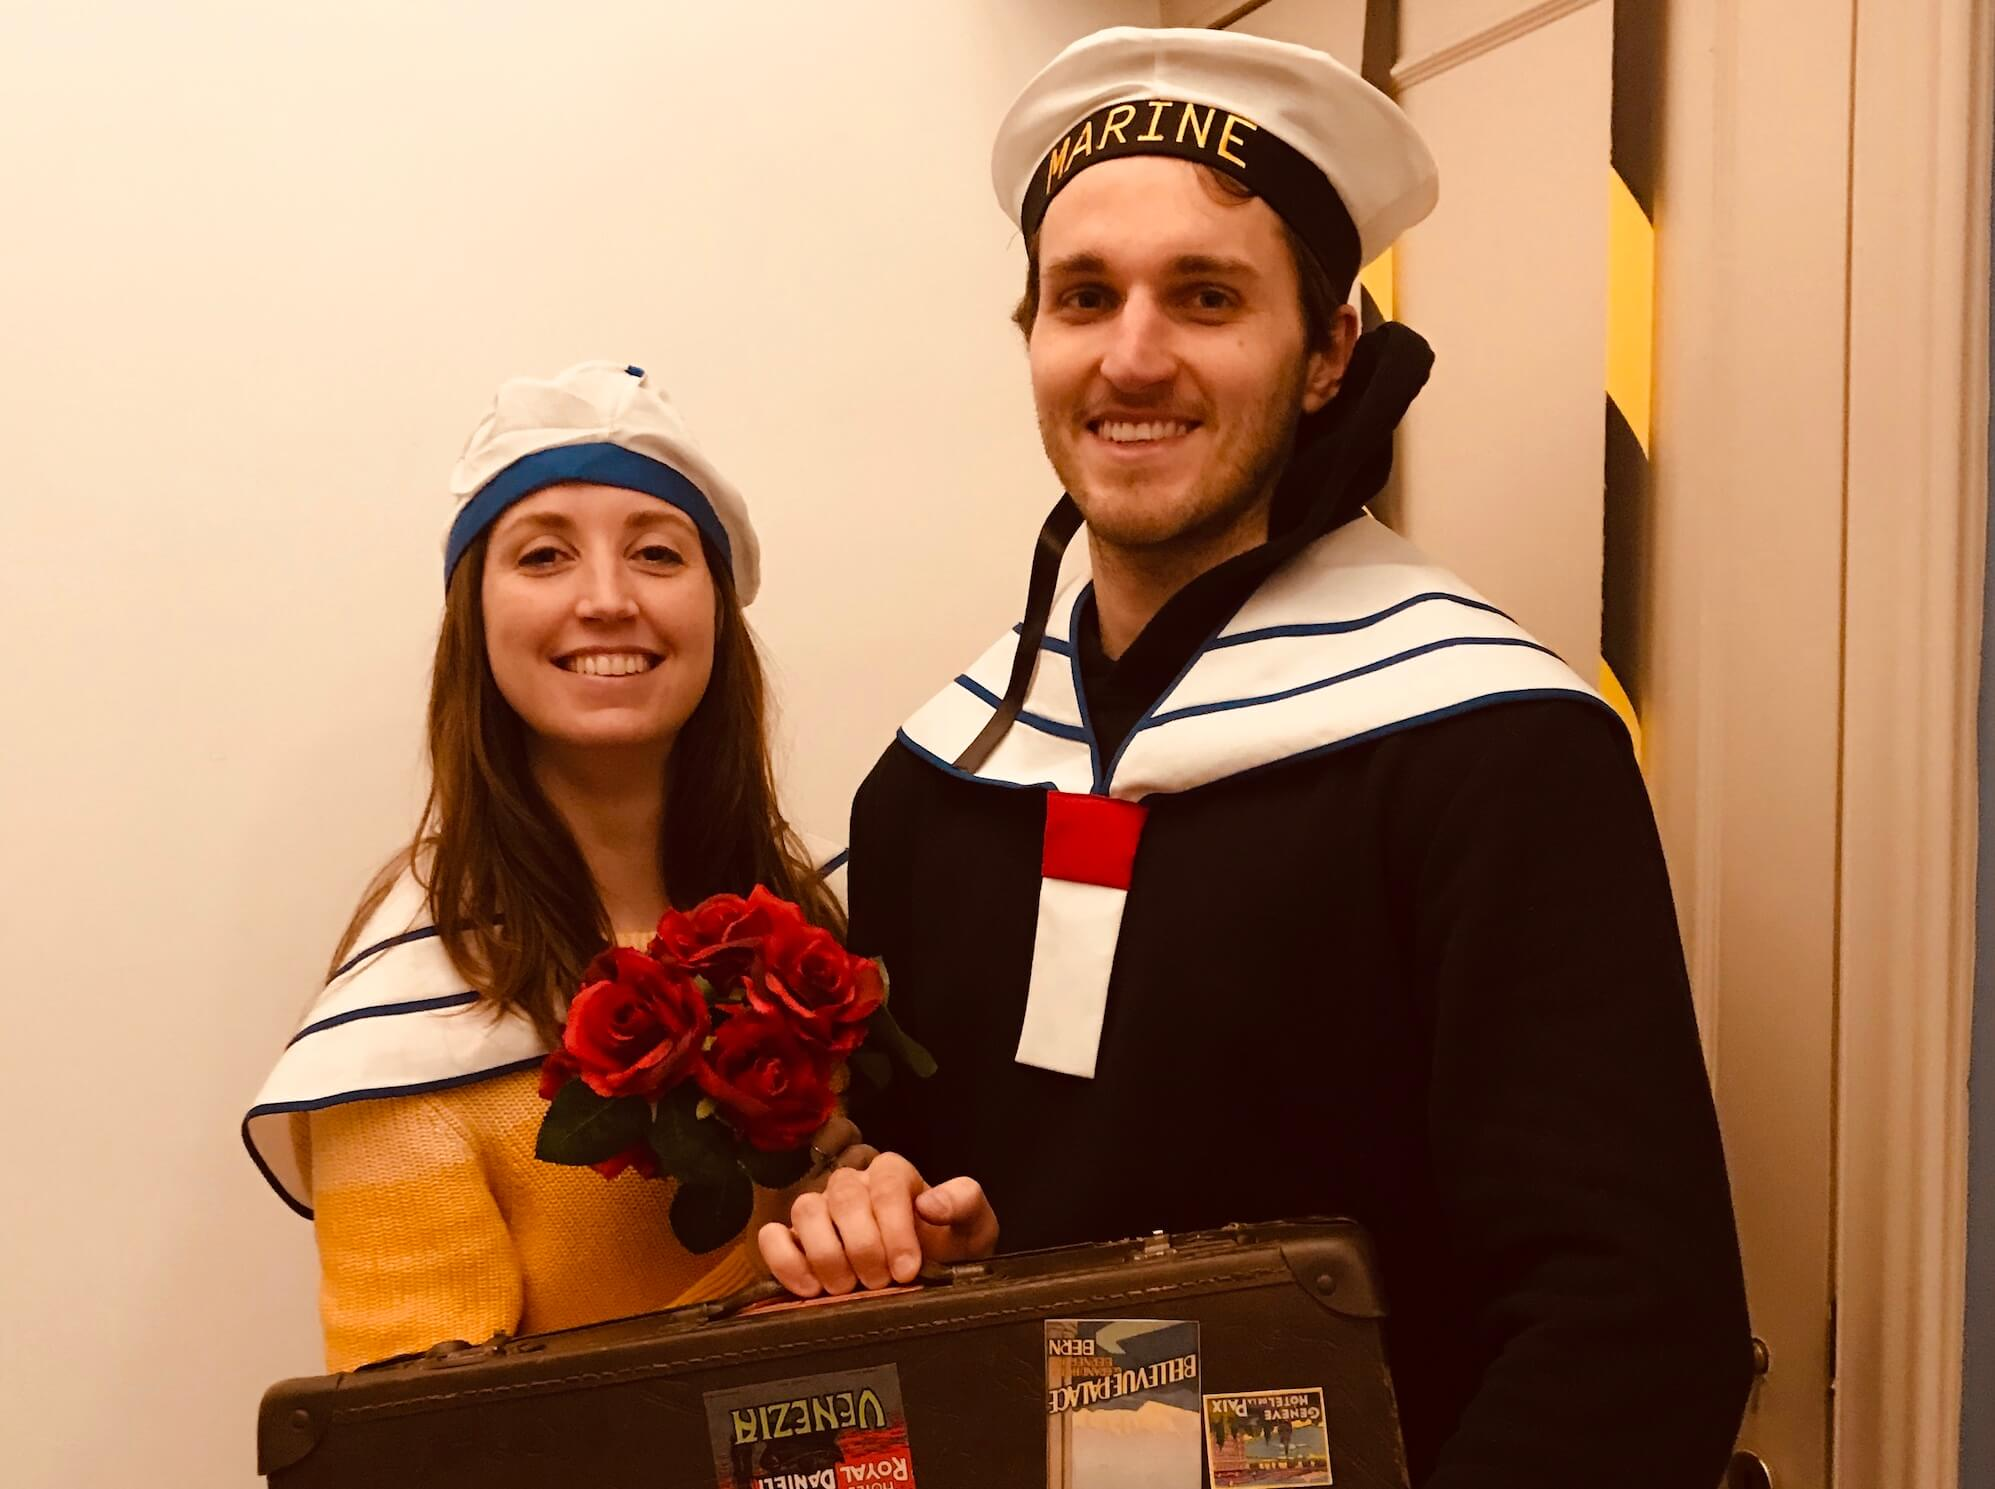 couple-escape-room-escape-cruise